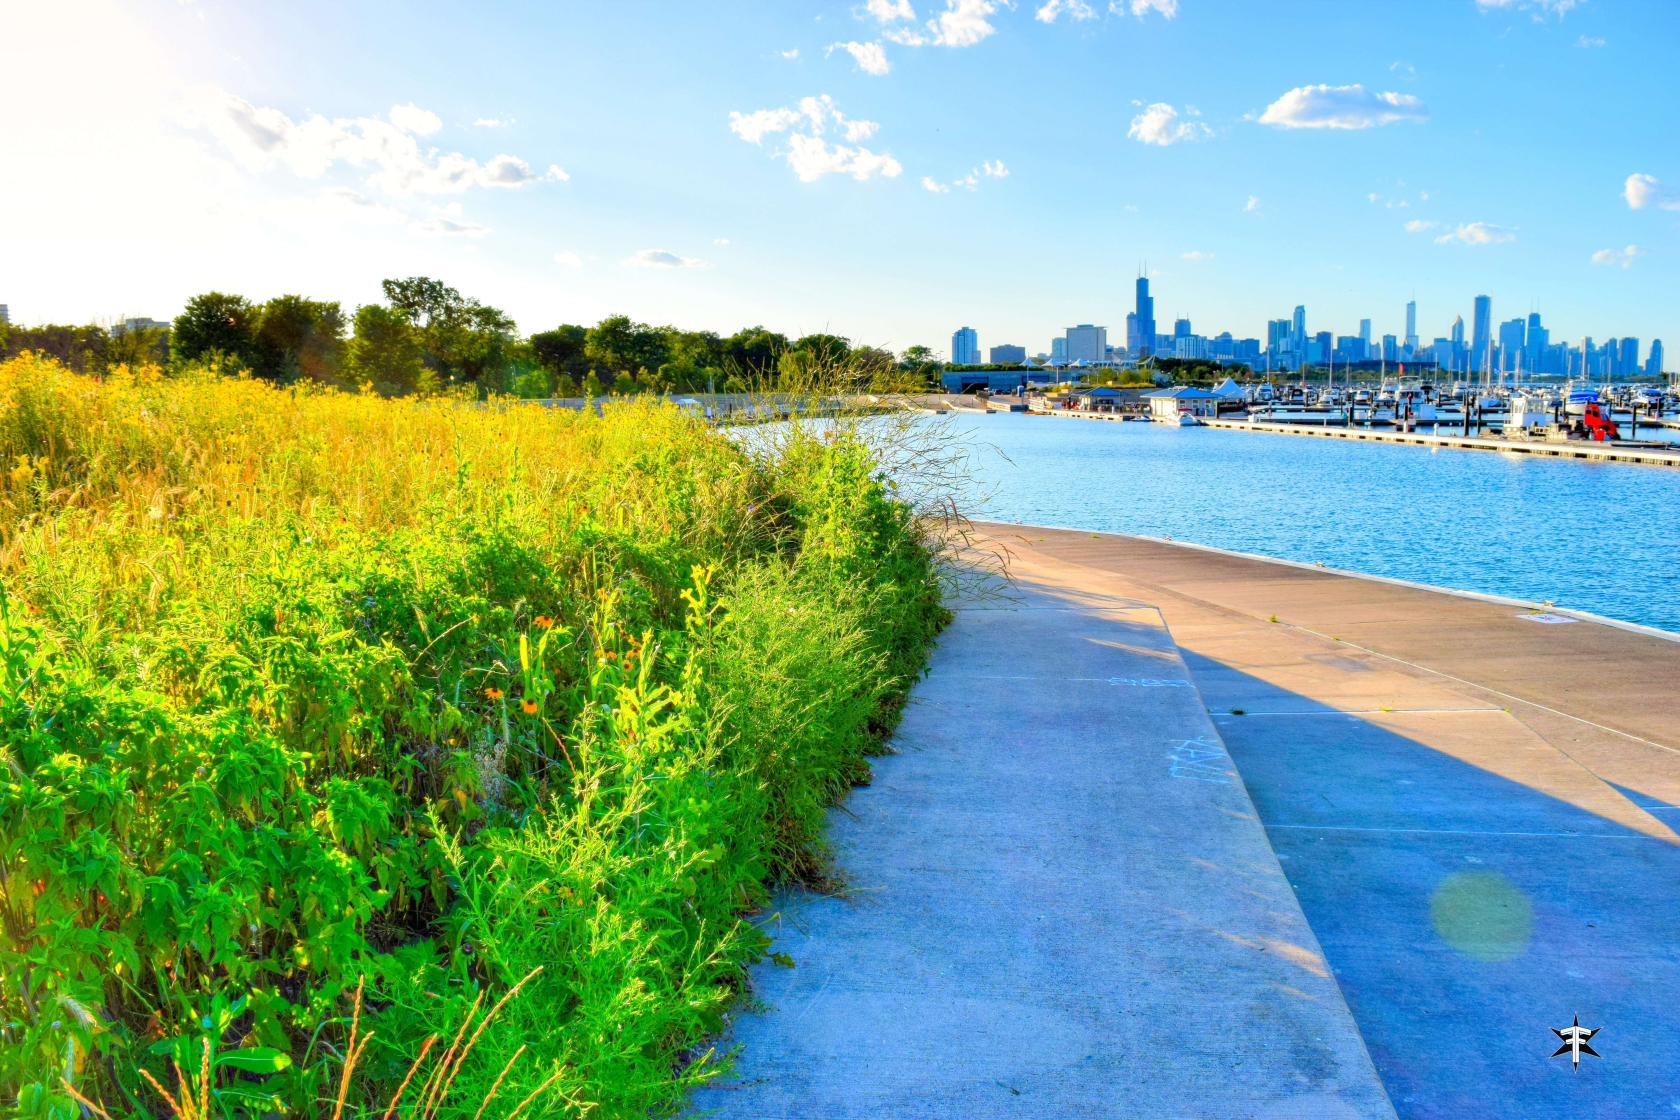 batch_Chicago burnham harbor skyline prairie buildings nature summer.jpg